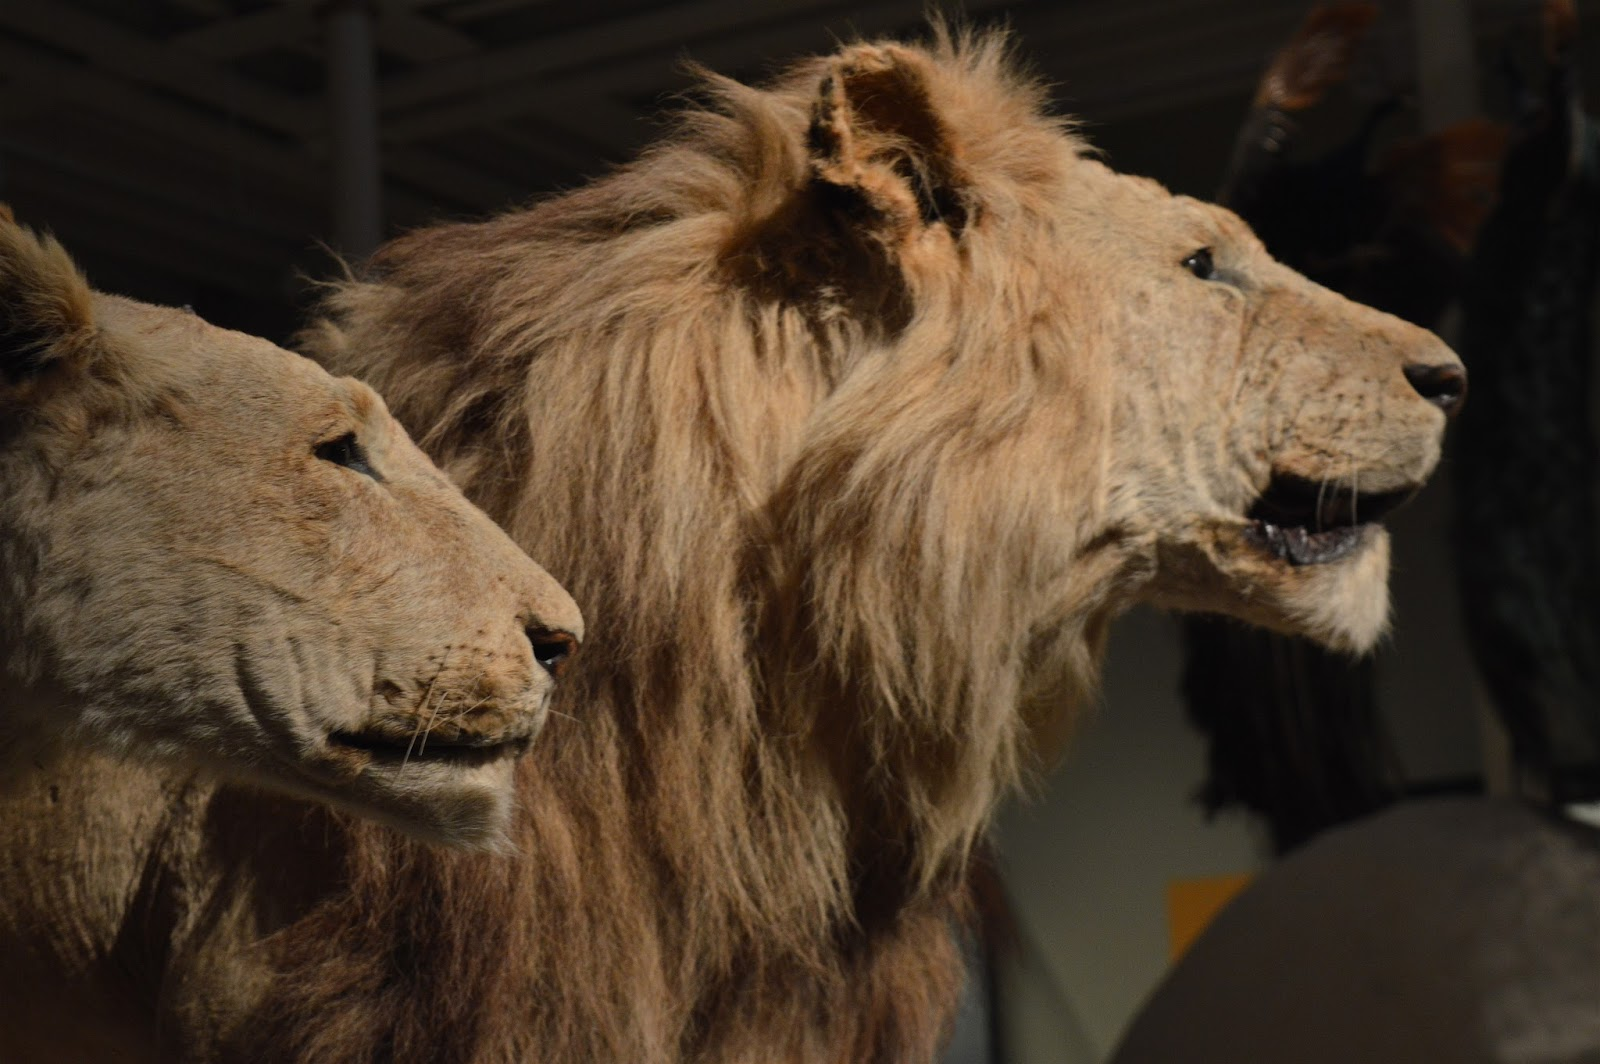 The National Museum of Scotland Lions